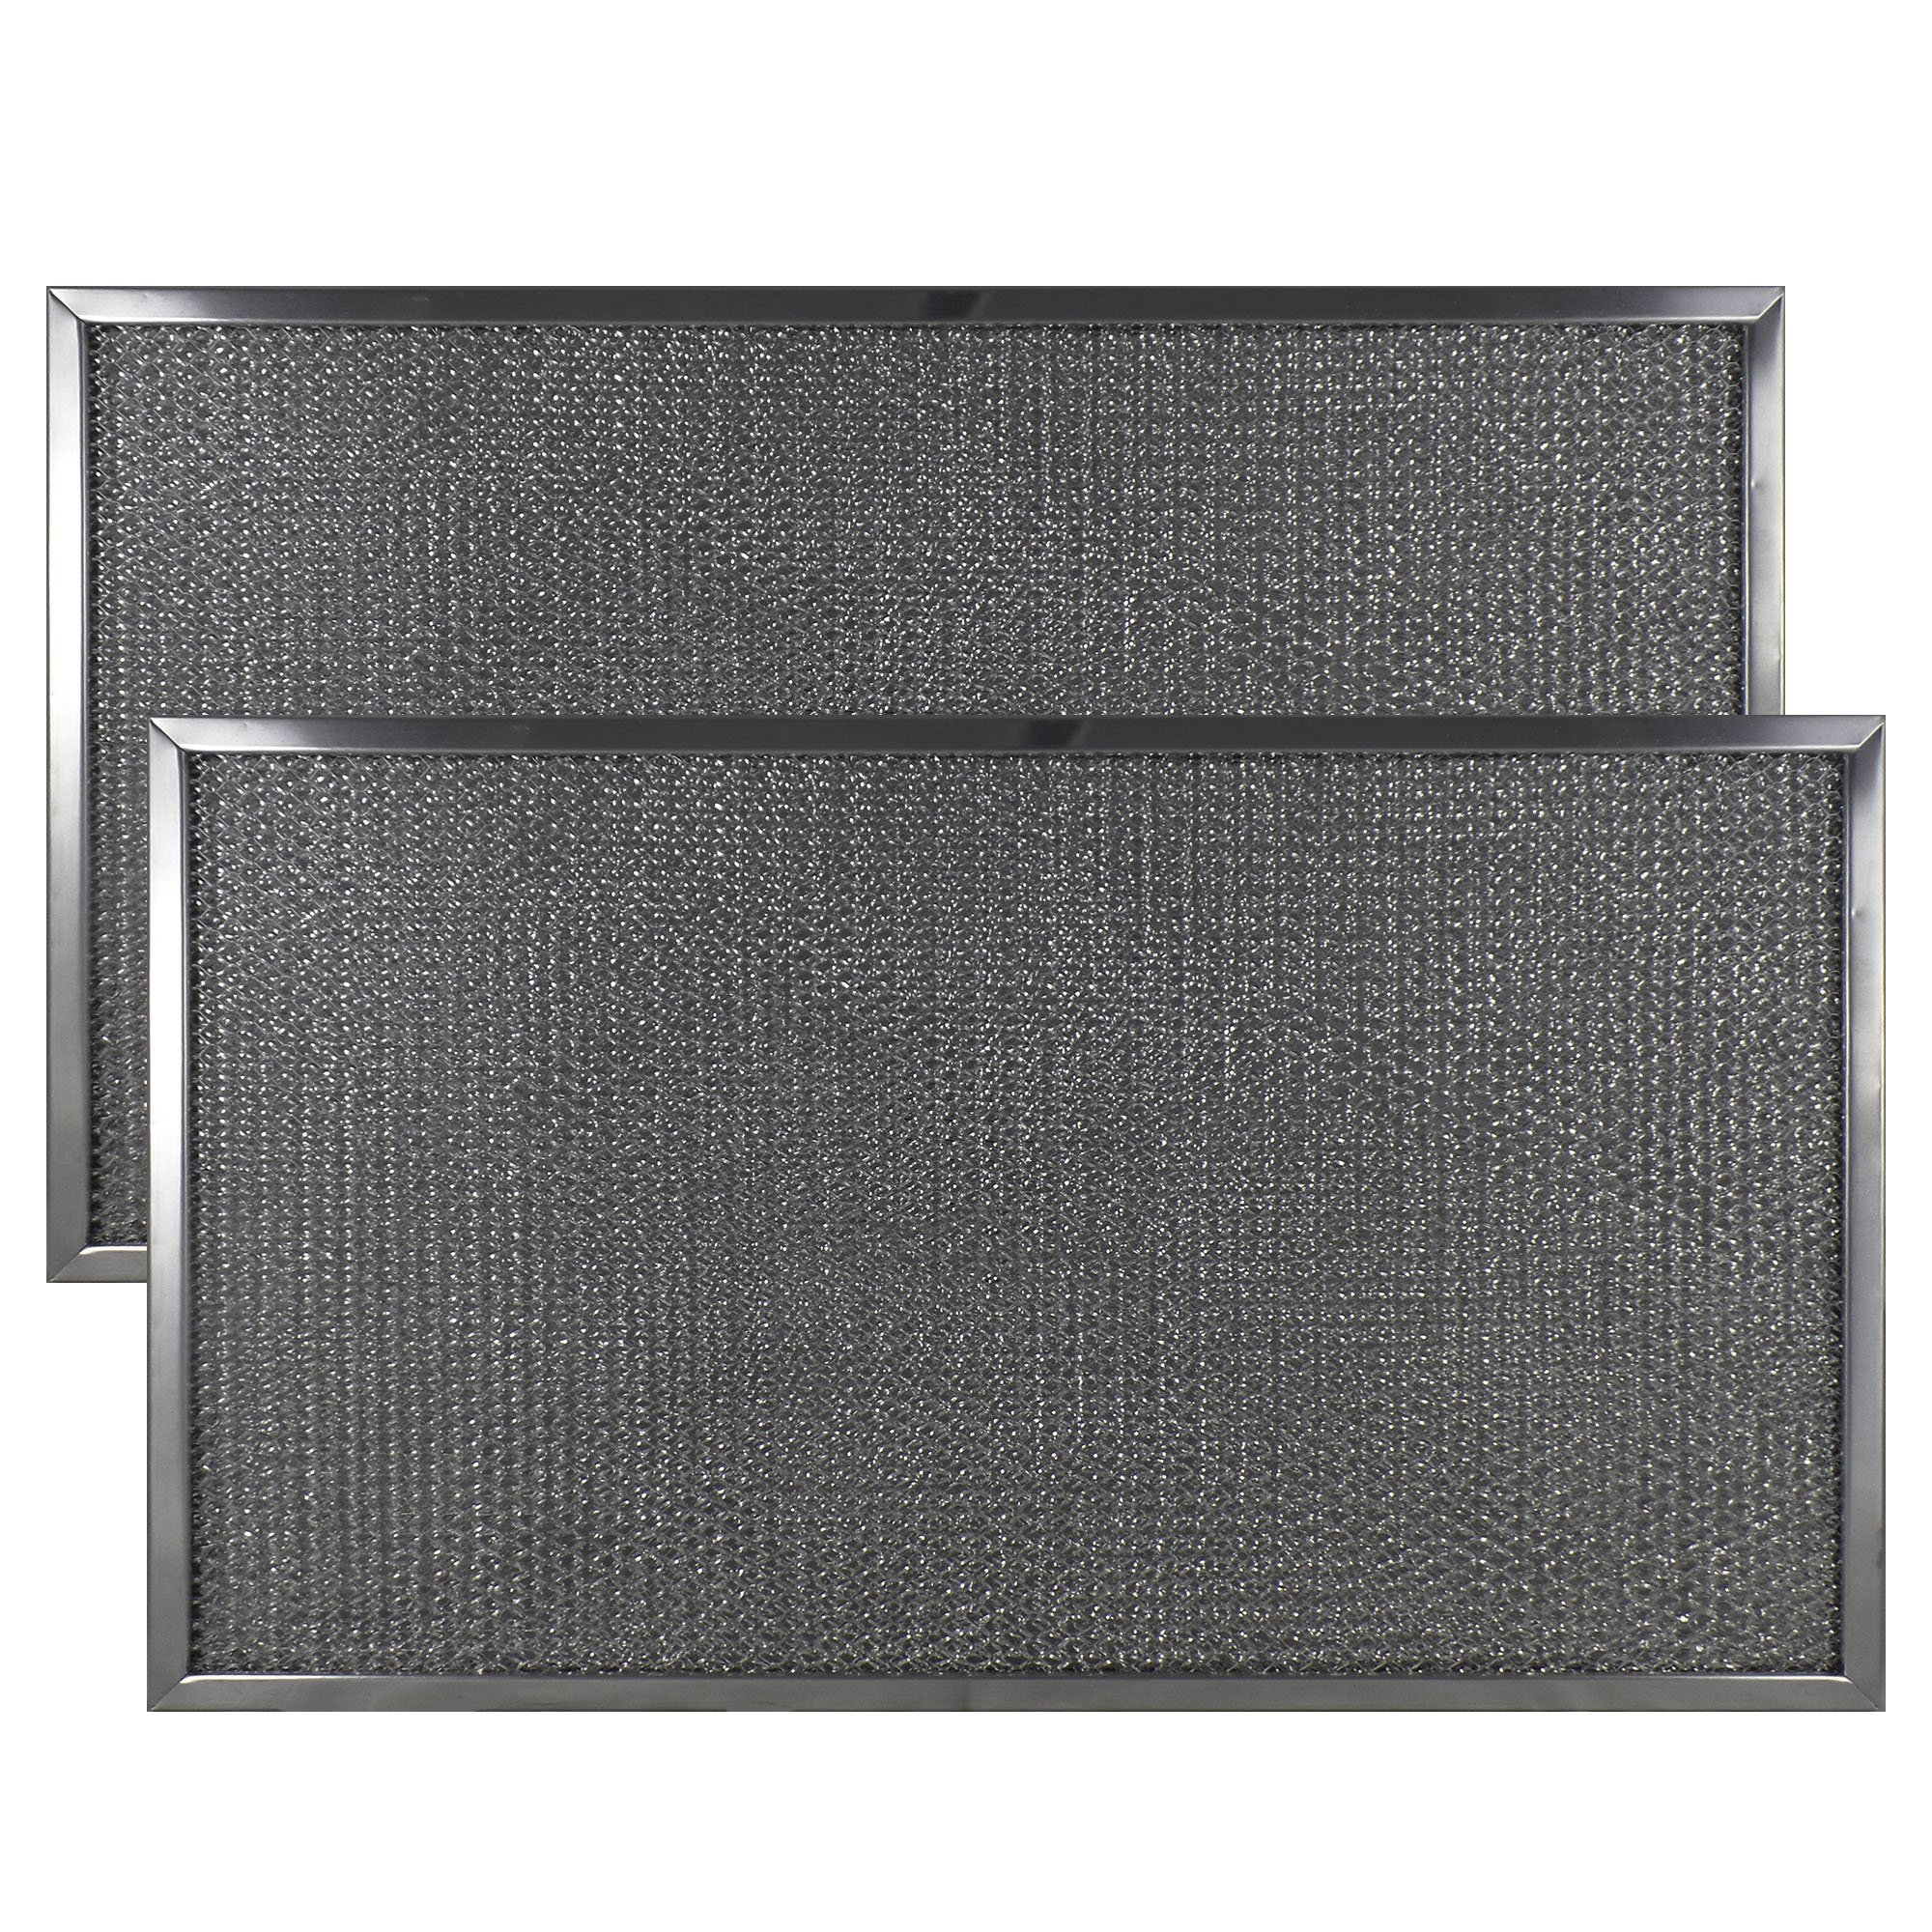 2-PACK Air Filter Factory 11-1/2 X 20 X 3/8 Range Hood Aluminum Grease Filters AFF215-M